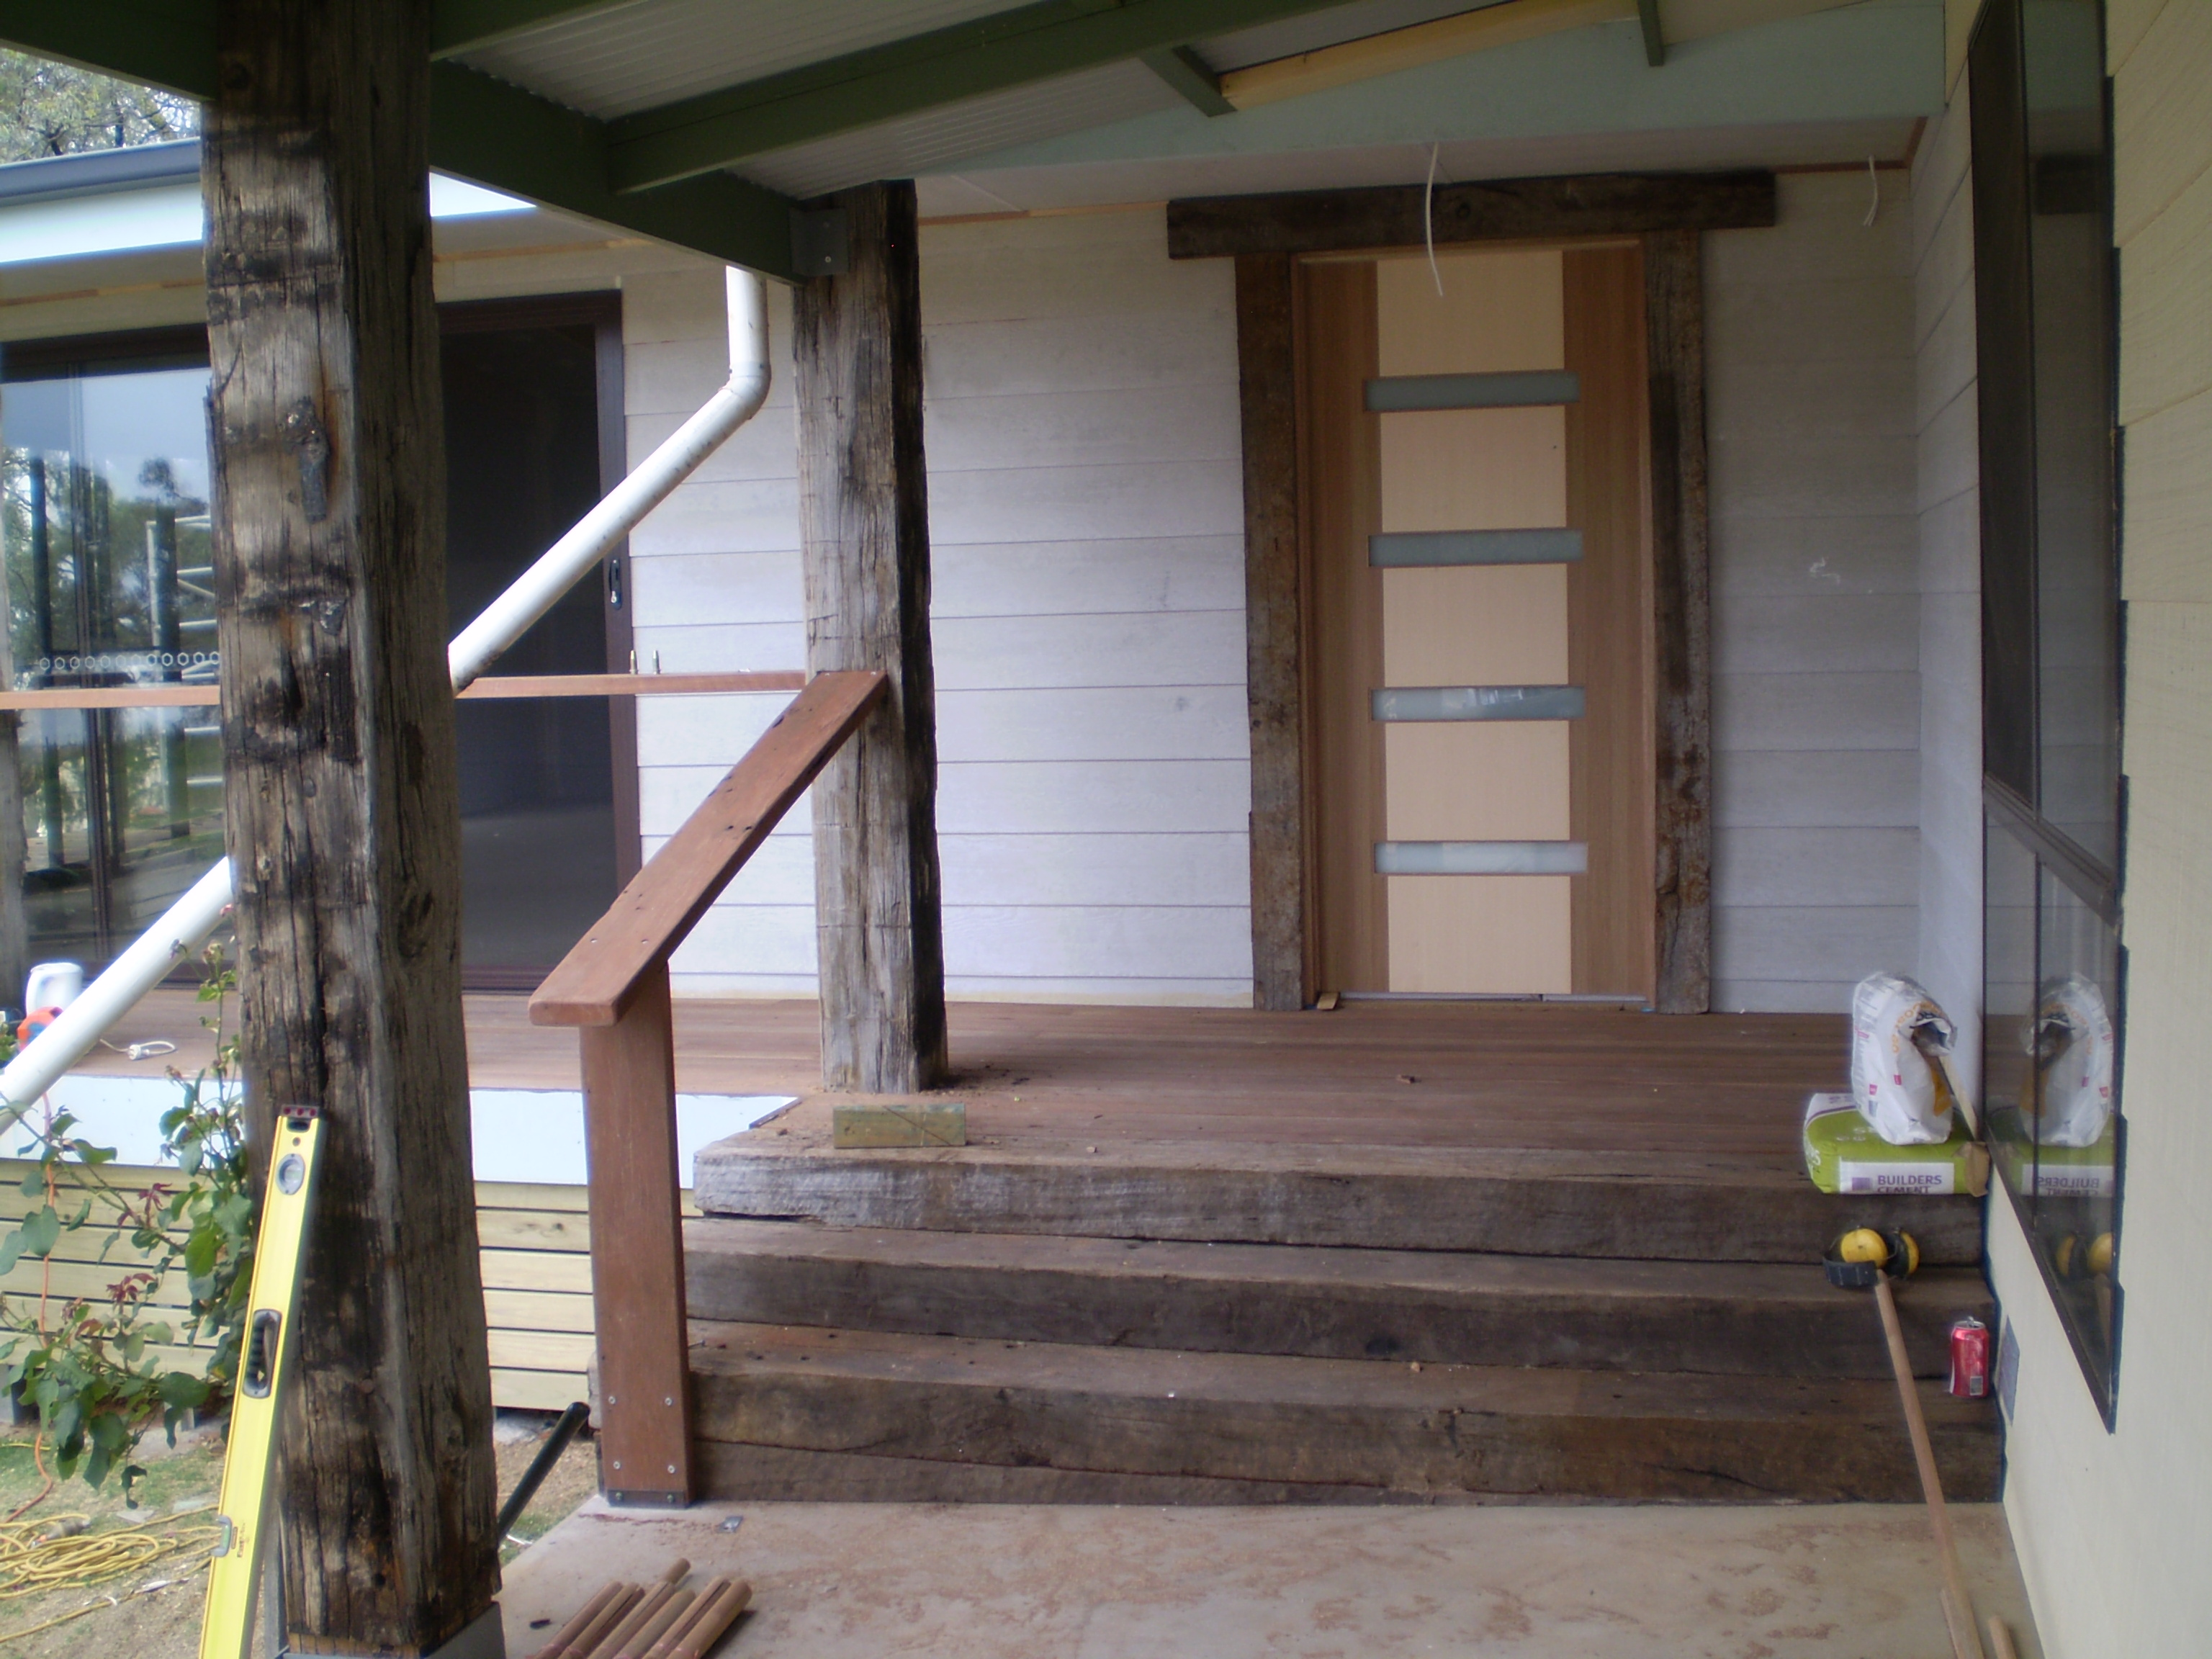 Timber stairs, posts, hand rail and new door.